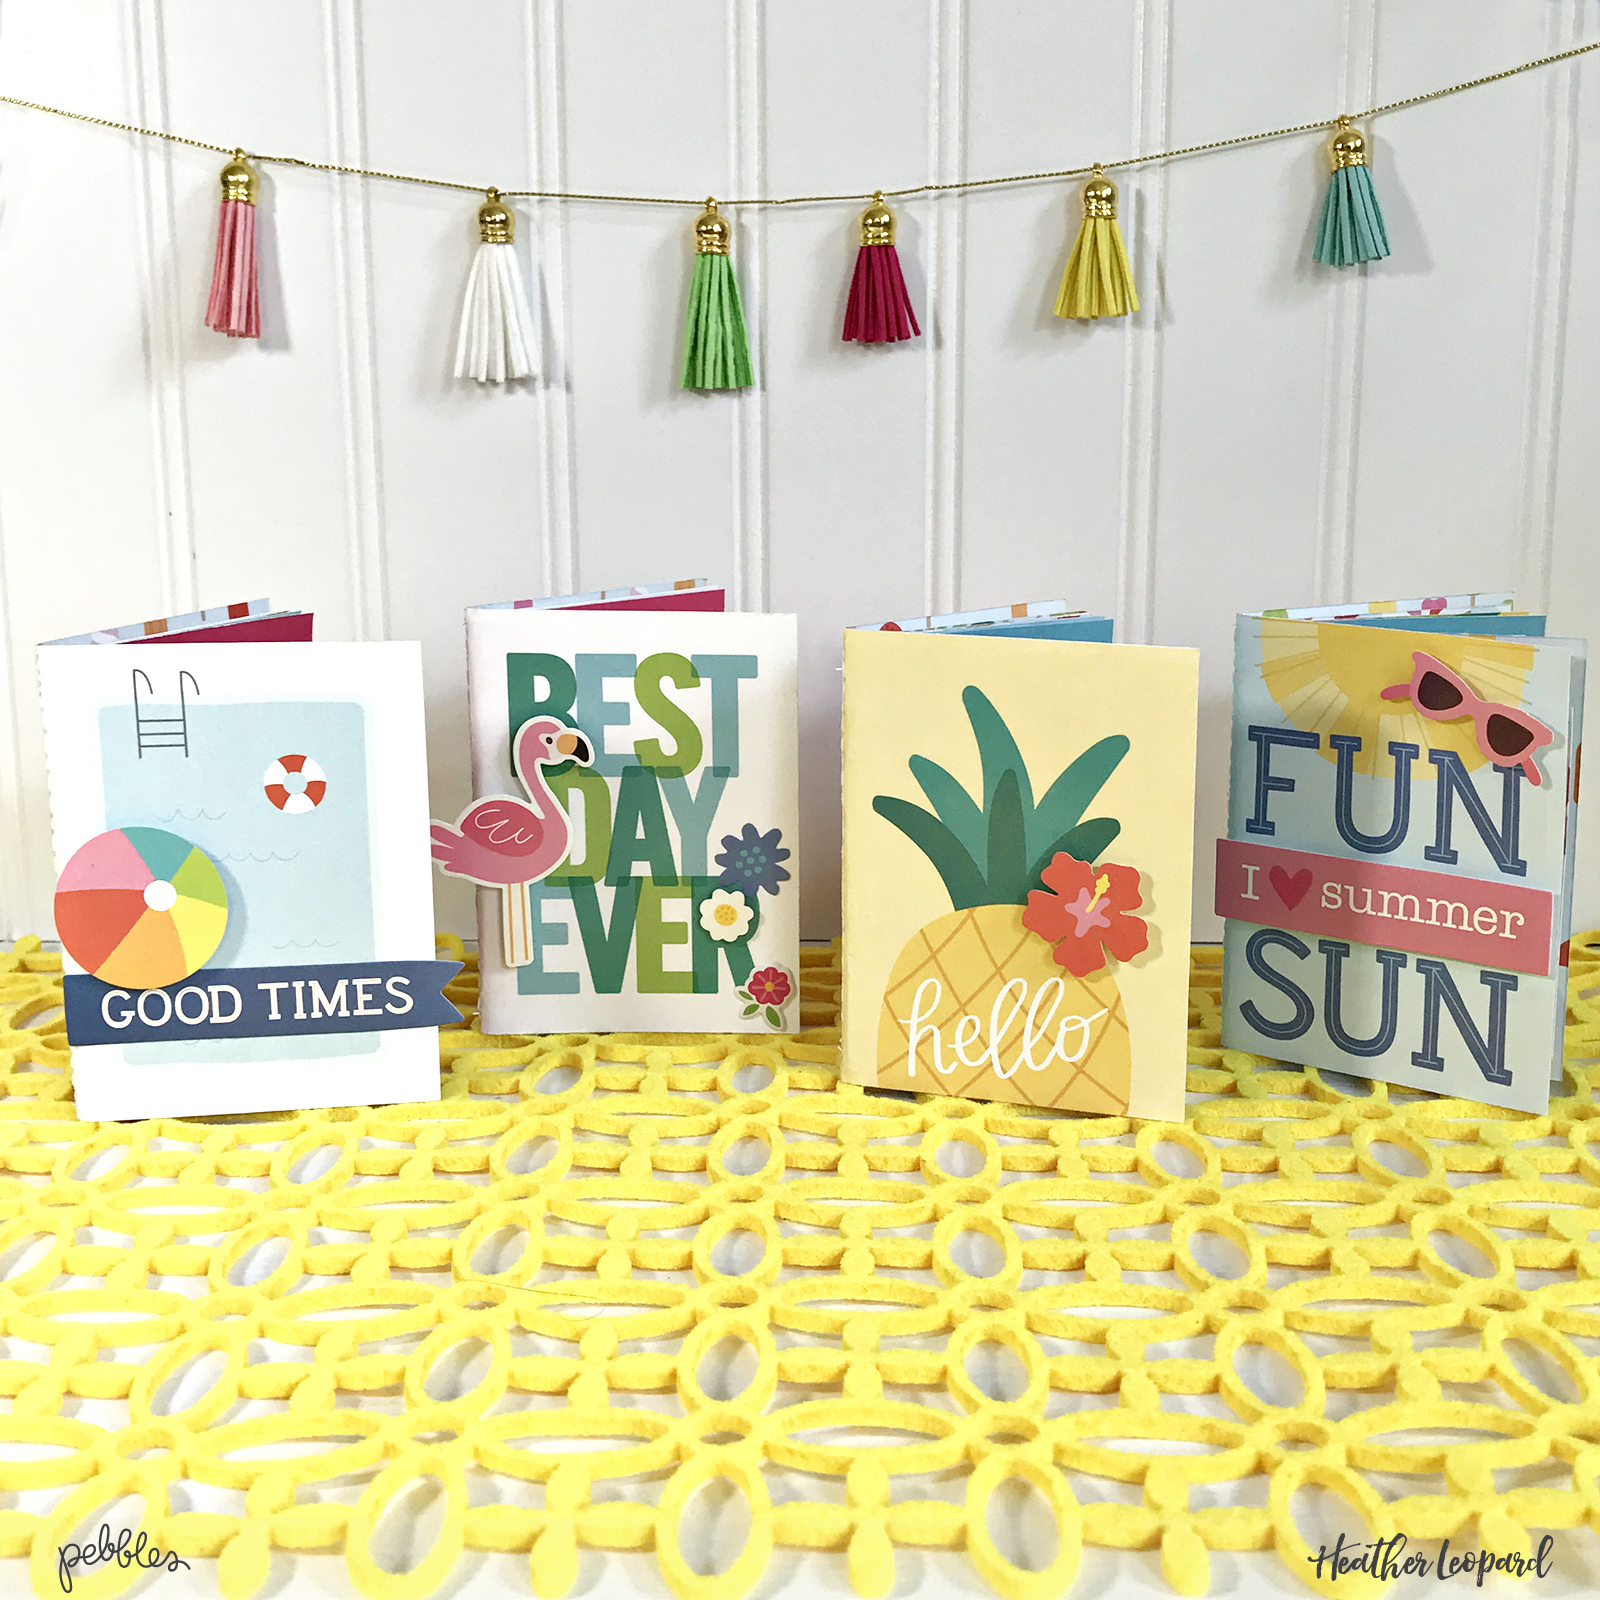 Quick Gift Idea for Summer - Mini Summer Traveler's Notebooks by @heatherleopard using @Pebblesinc #sunshinydays collection #madewithpebbles #summer #quickgift #gift #TN #travelersnotebook